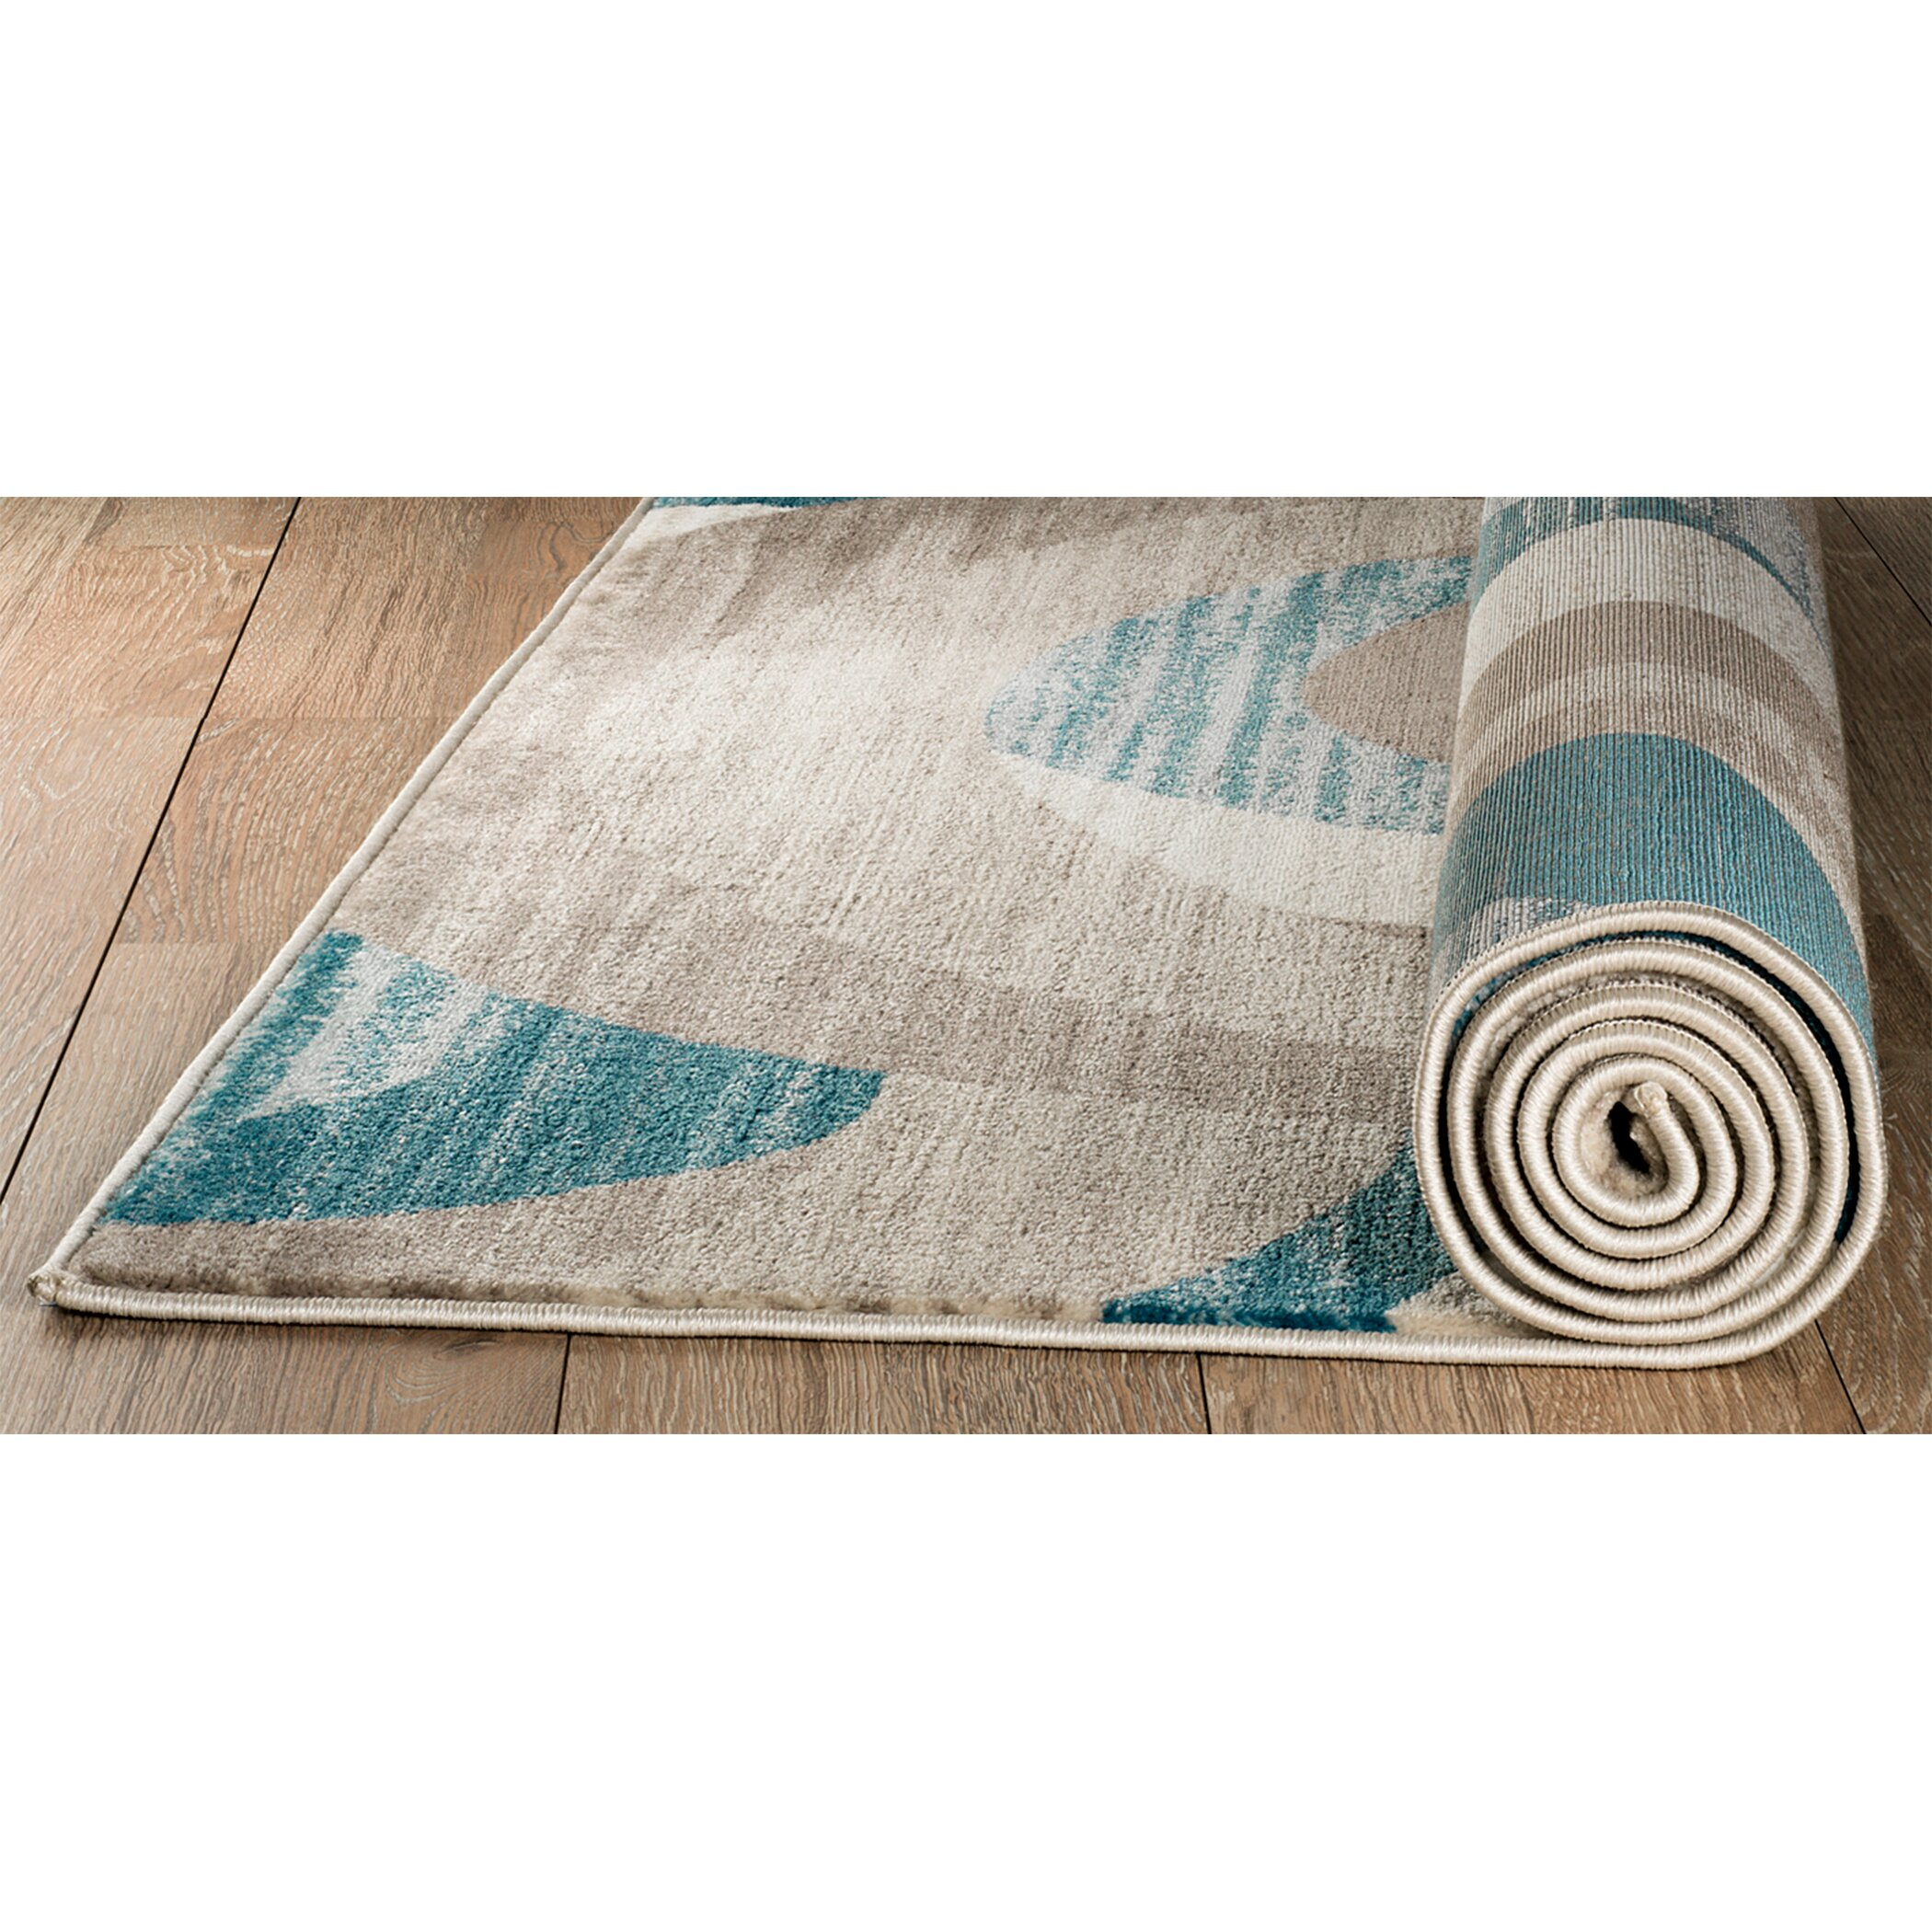 Turquoise Runner Rug: Rug And Decor Inc. Summit Turquoise Area Rug & Reviews